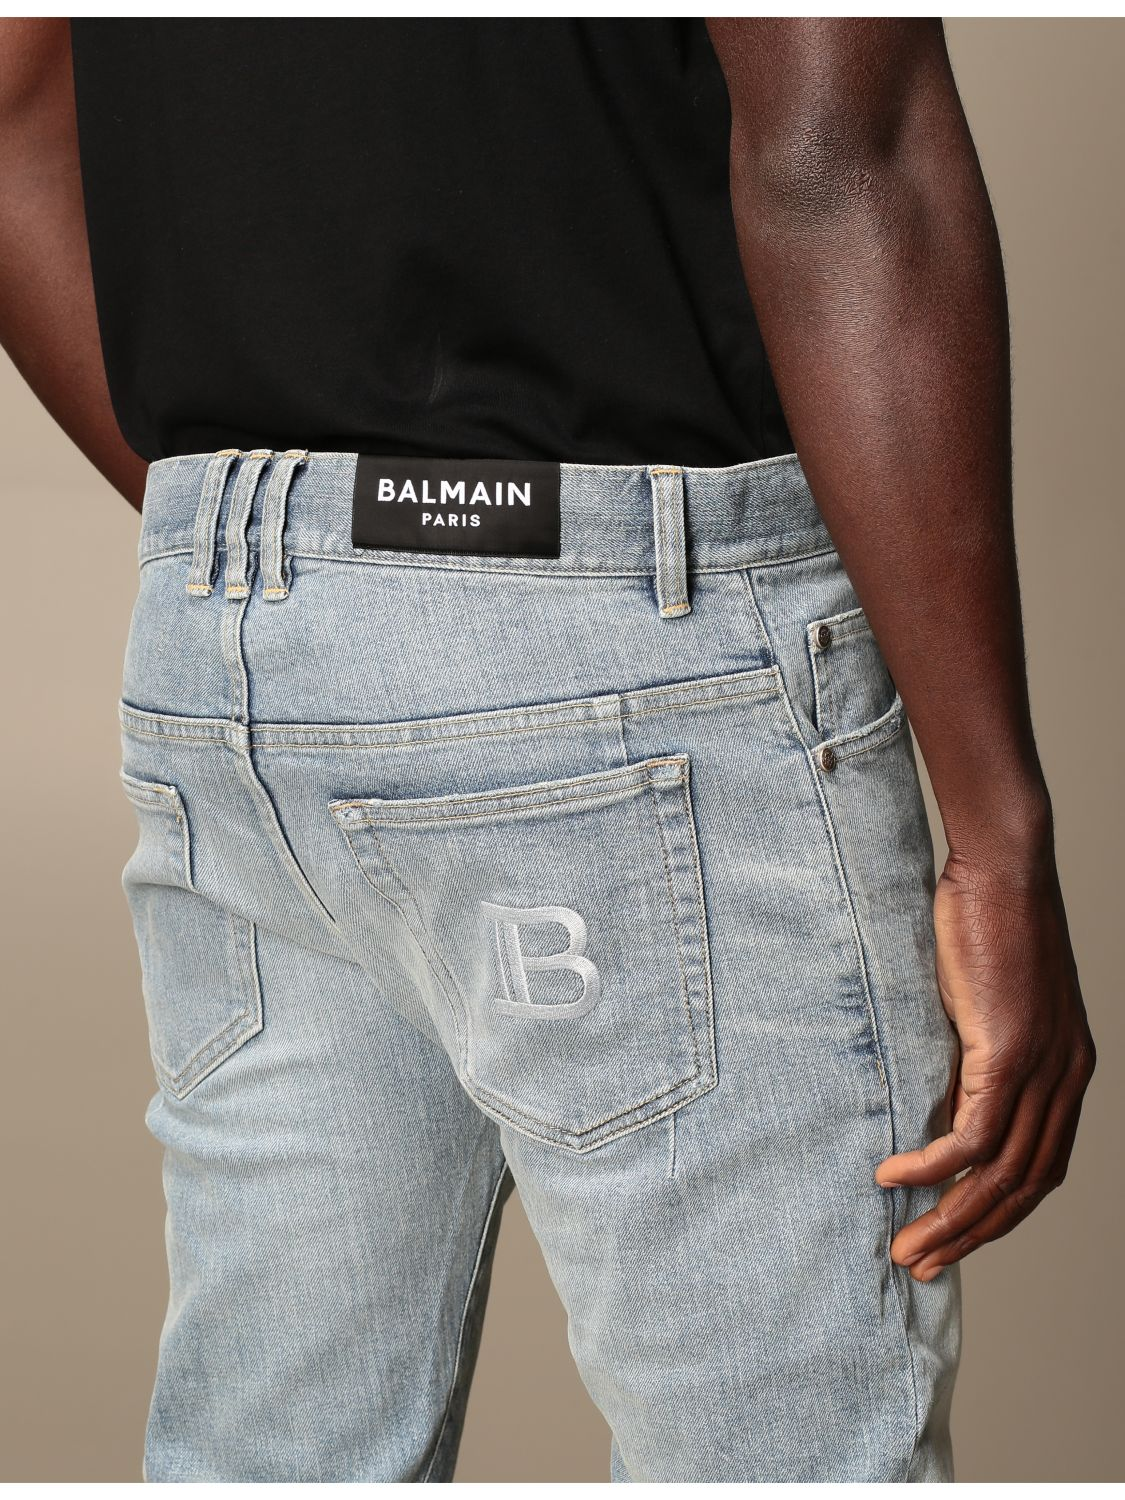 Jeans Balmain: Balmain jeans in stretch denim with logo stone washed 5